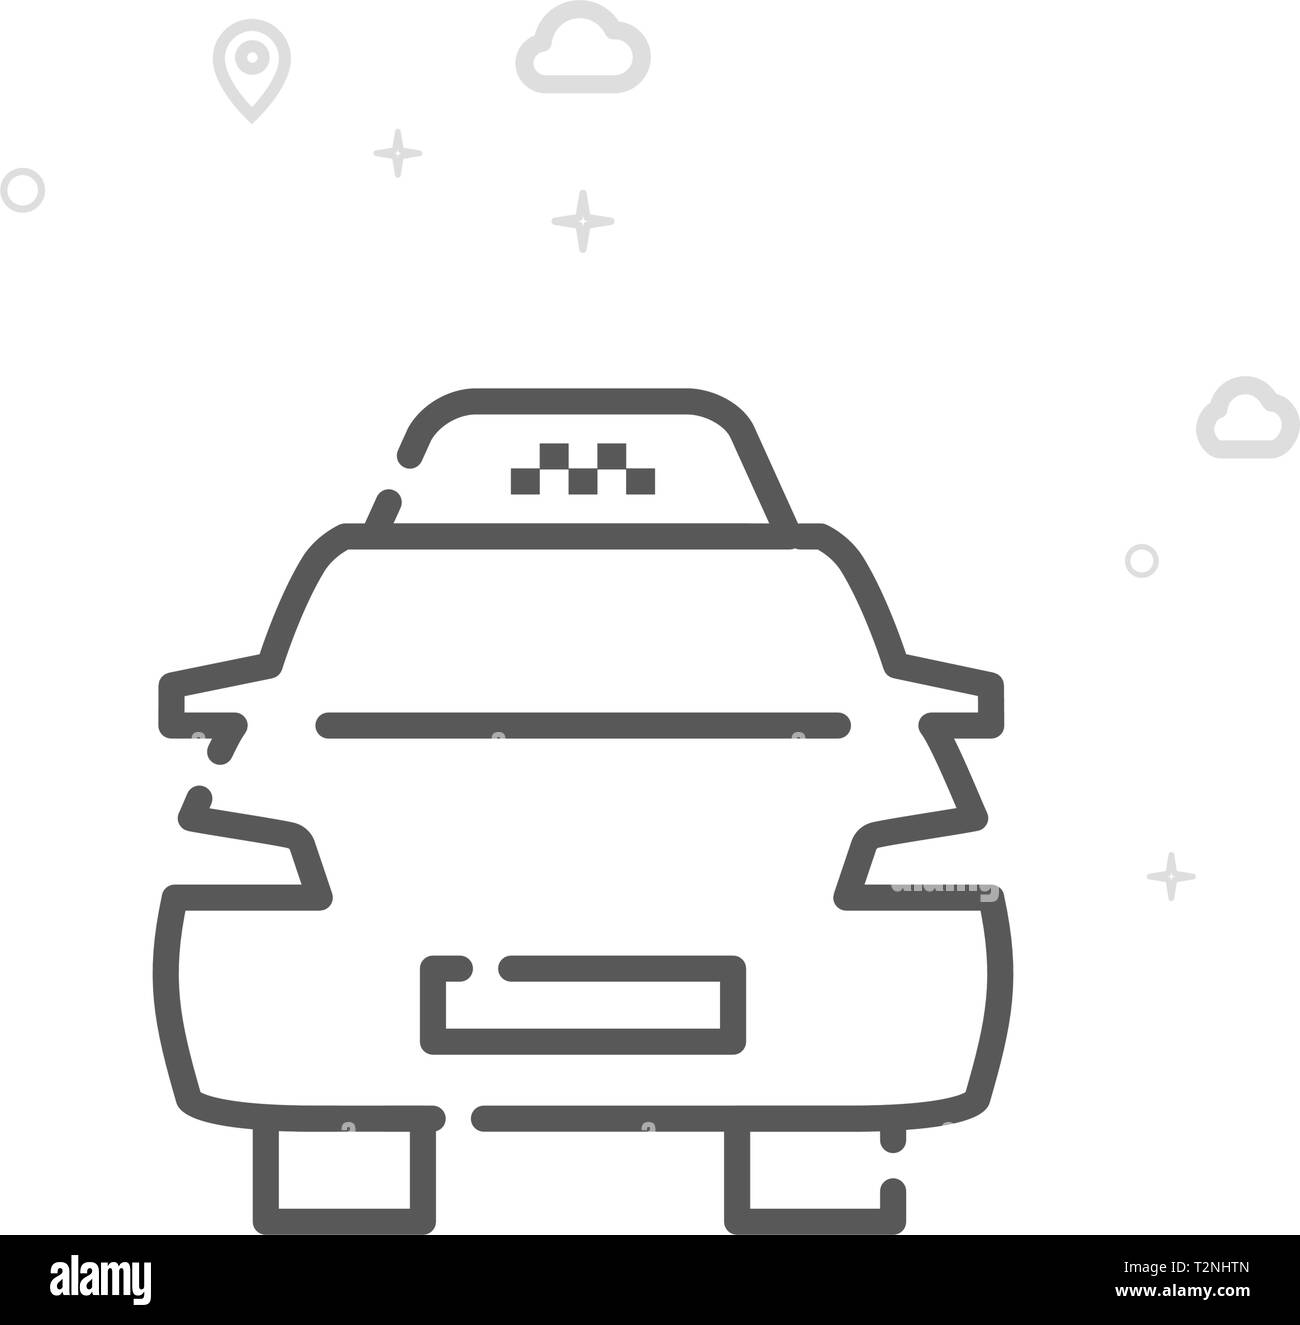 Taxi Vector Line Icon. City Urban Transport Symbol, Pictogram, Sign. Light Abstract Geometric Background. Editable Stroke. Adjust Line Weight. Stock Vector